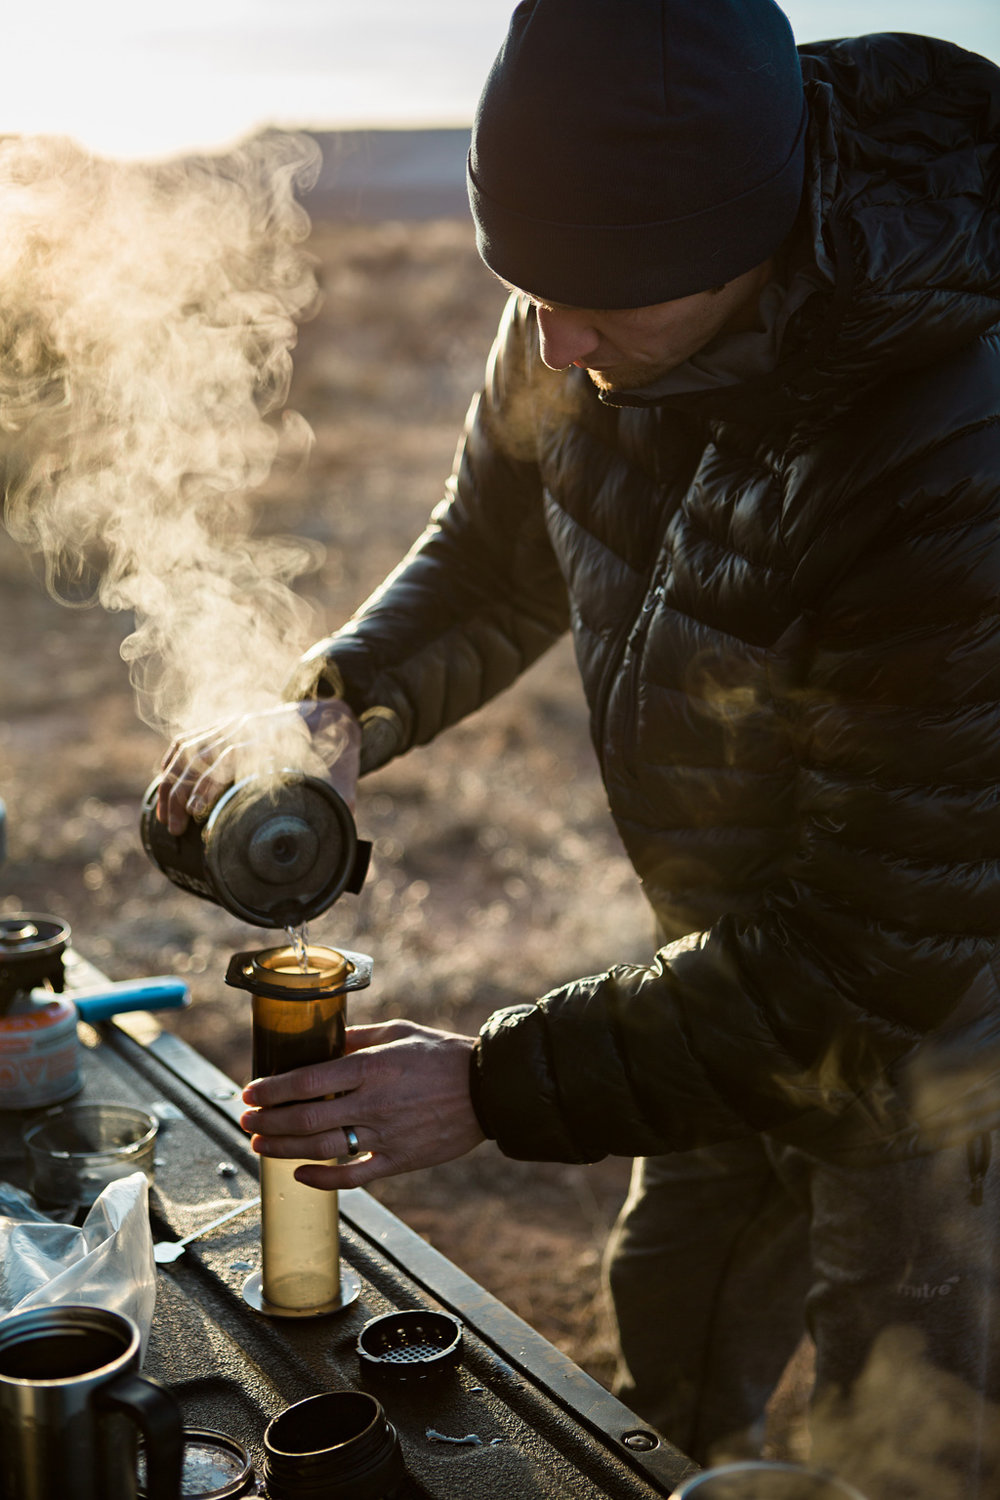 CindyGiovagnoli_Utah_Zion_desert_night_morning_coffee_blm_land_off_grid-010.jpg